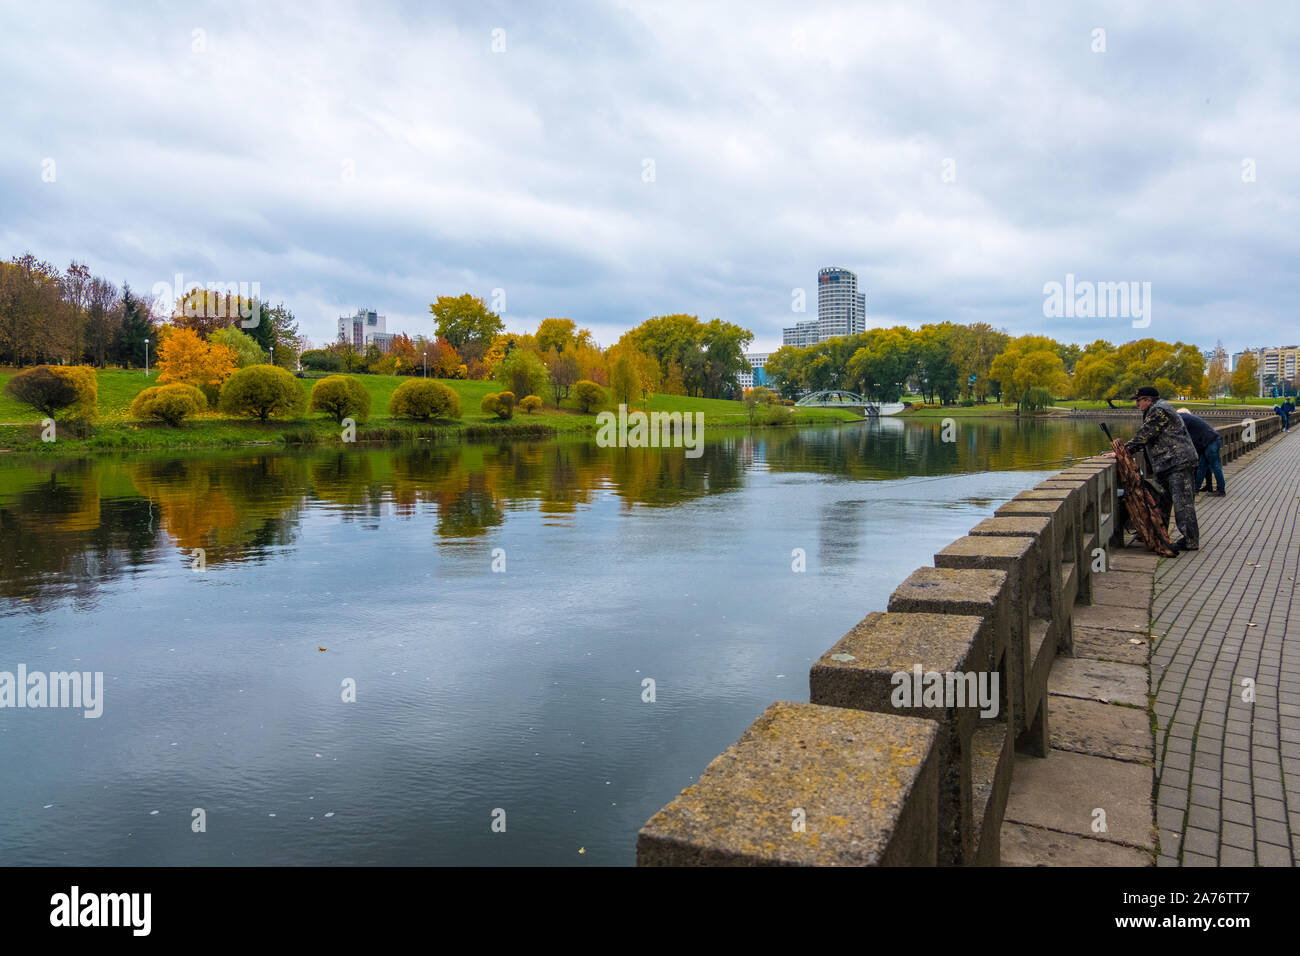 Minsk, Belarus - October, 13, 2019: Svisloch river and autumn cityscape of district Nyamiha in downtown Minsk, Belarus Stock Photo